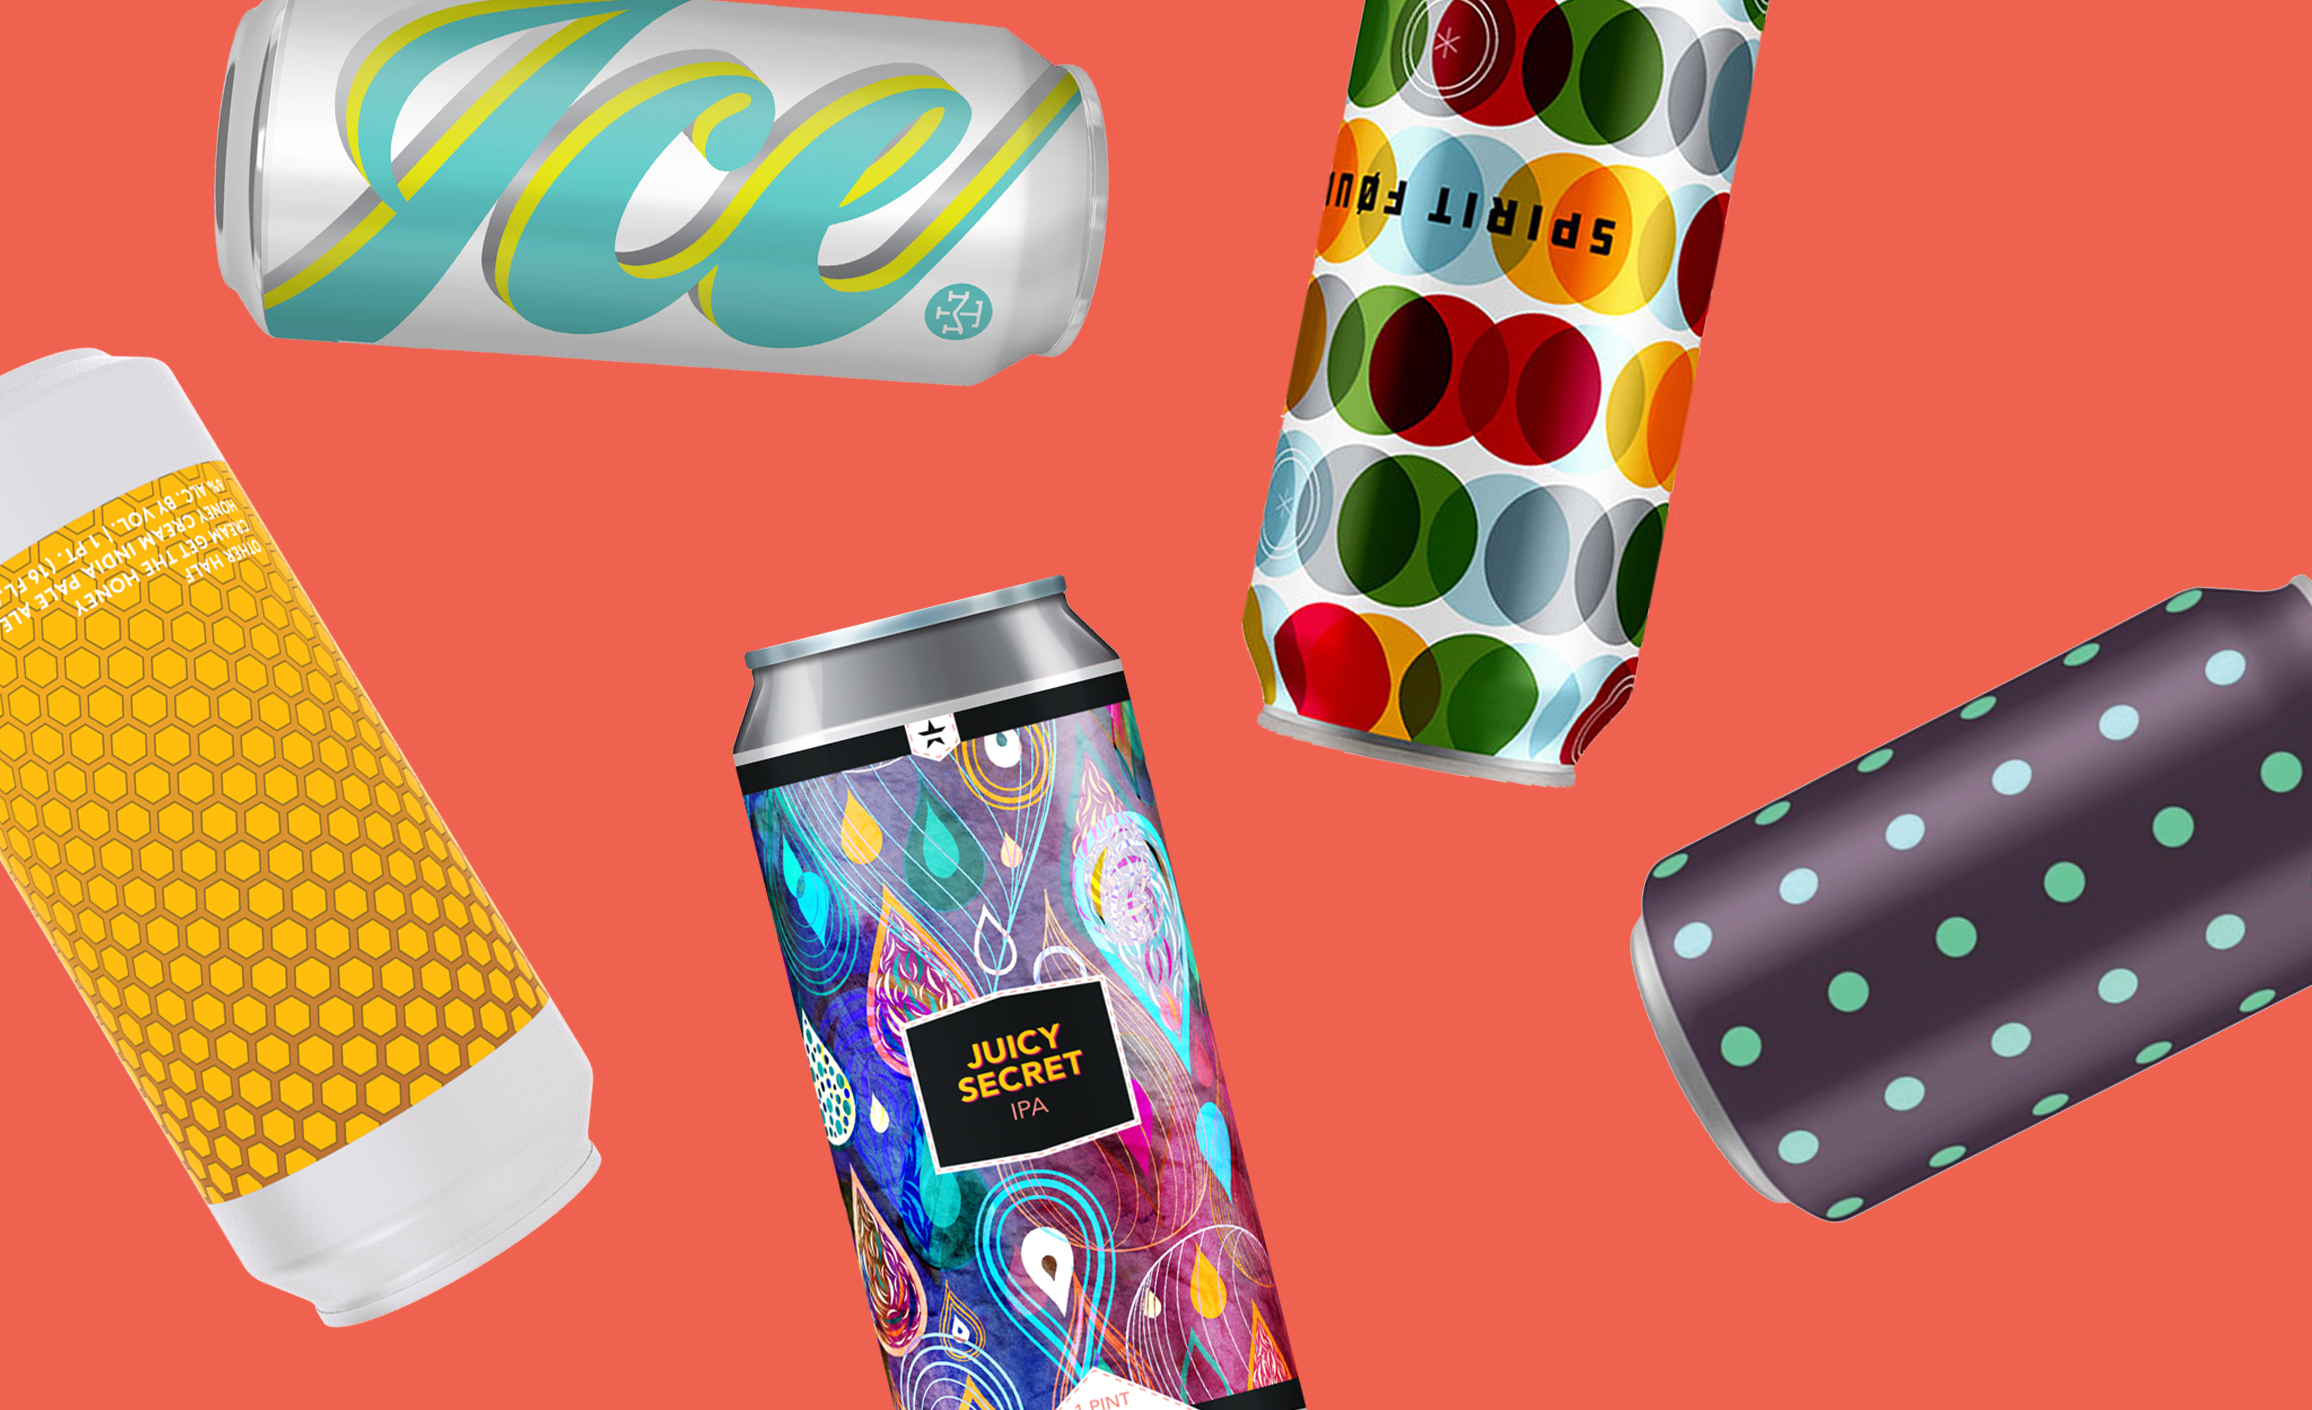 We Stan These Cans: 5 of Our Favorite Beer Can Designs